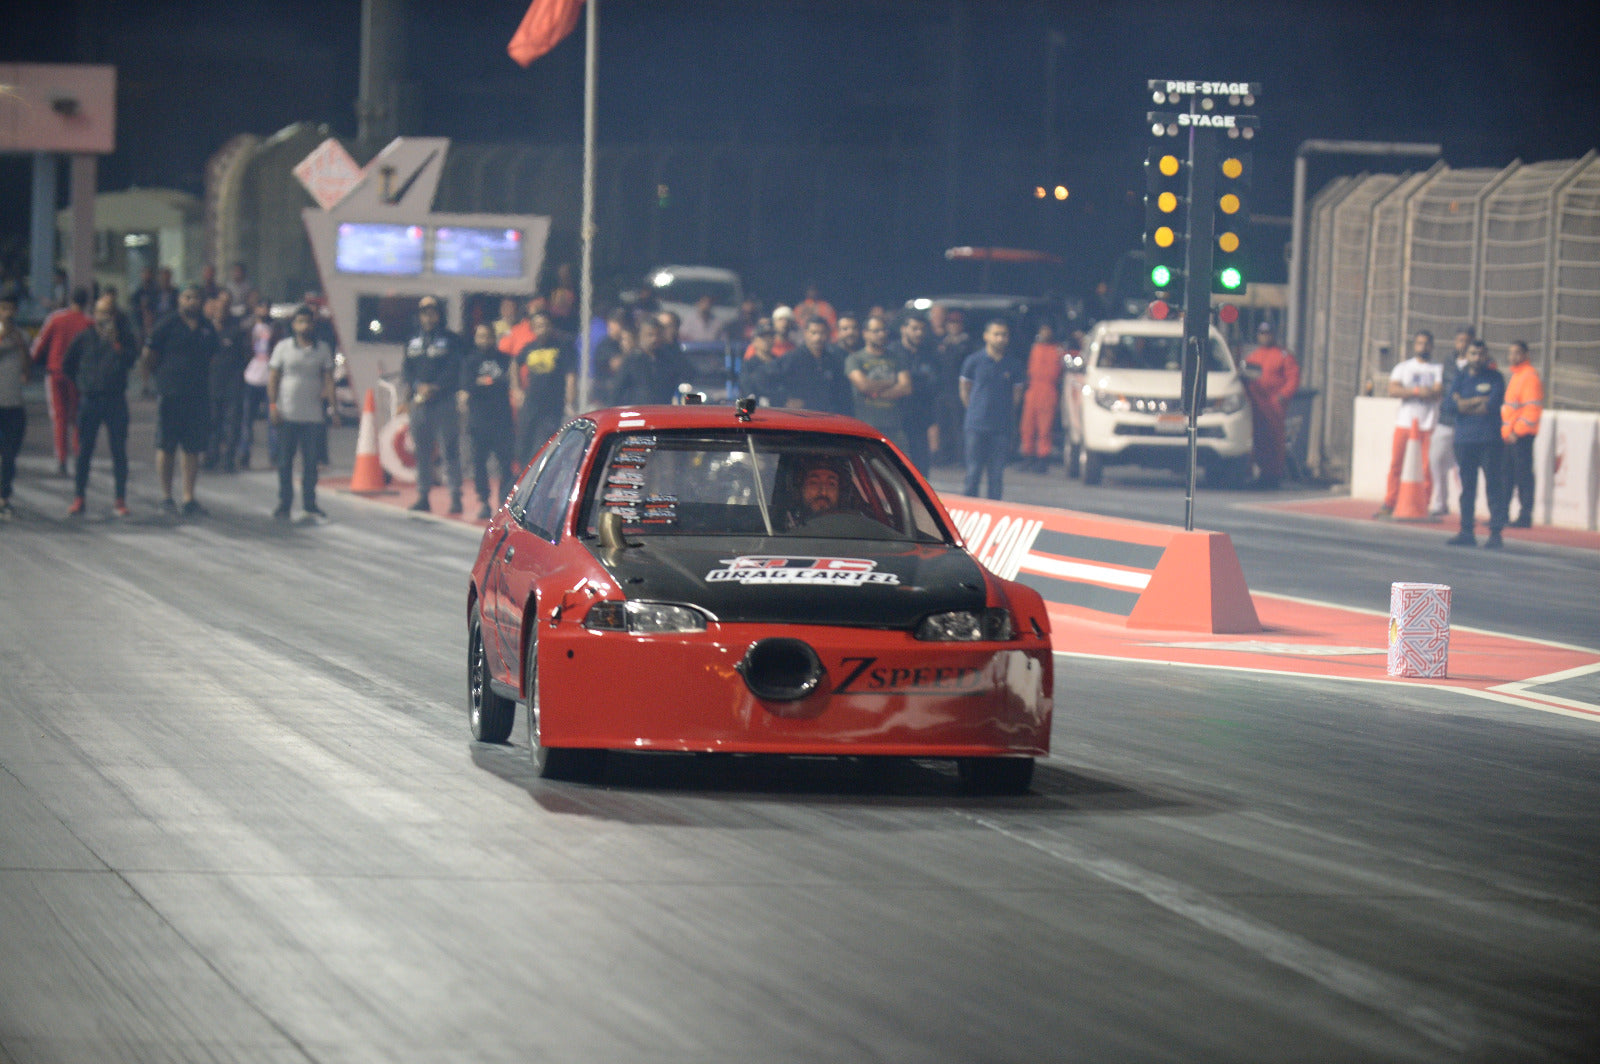 Quentin Boylan from South Africa drag racing